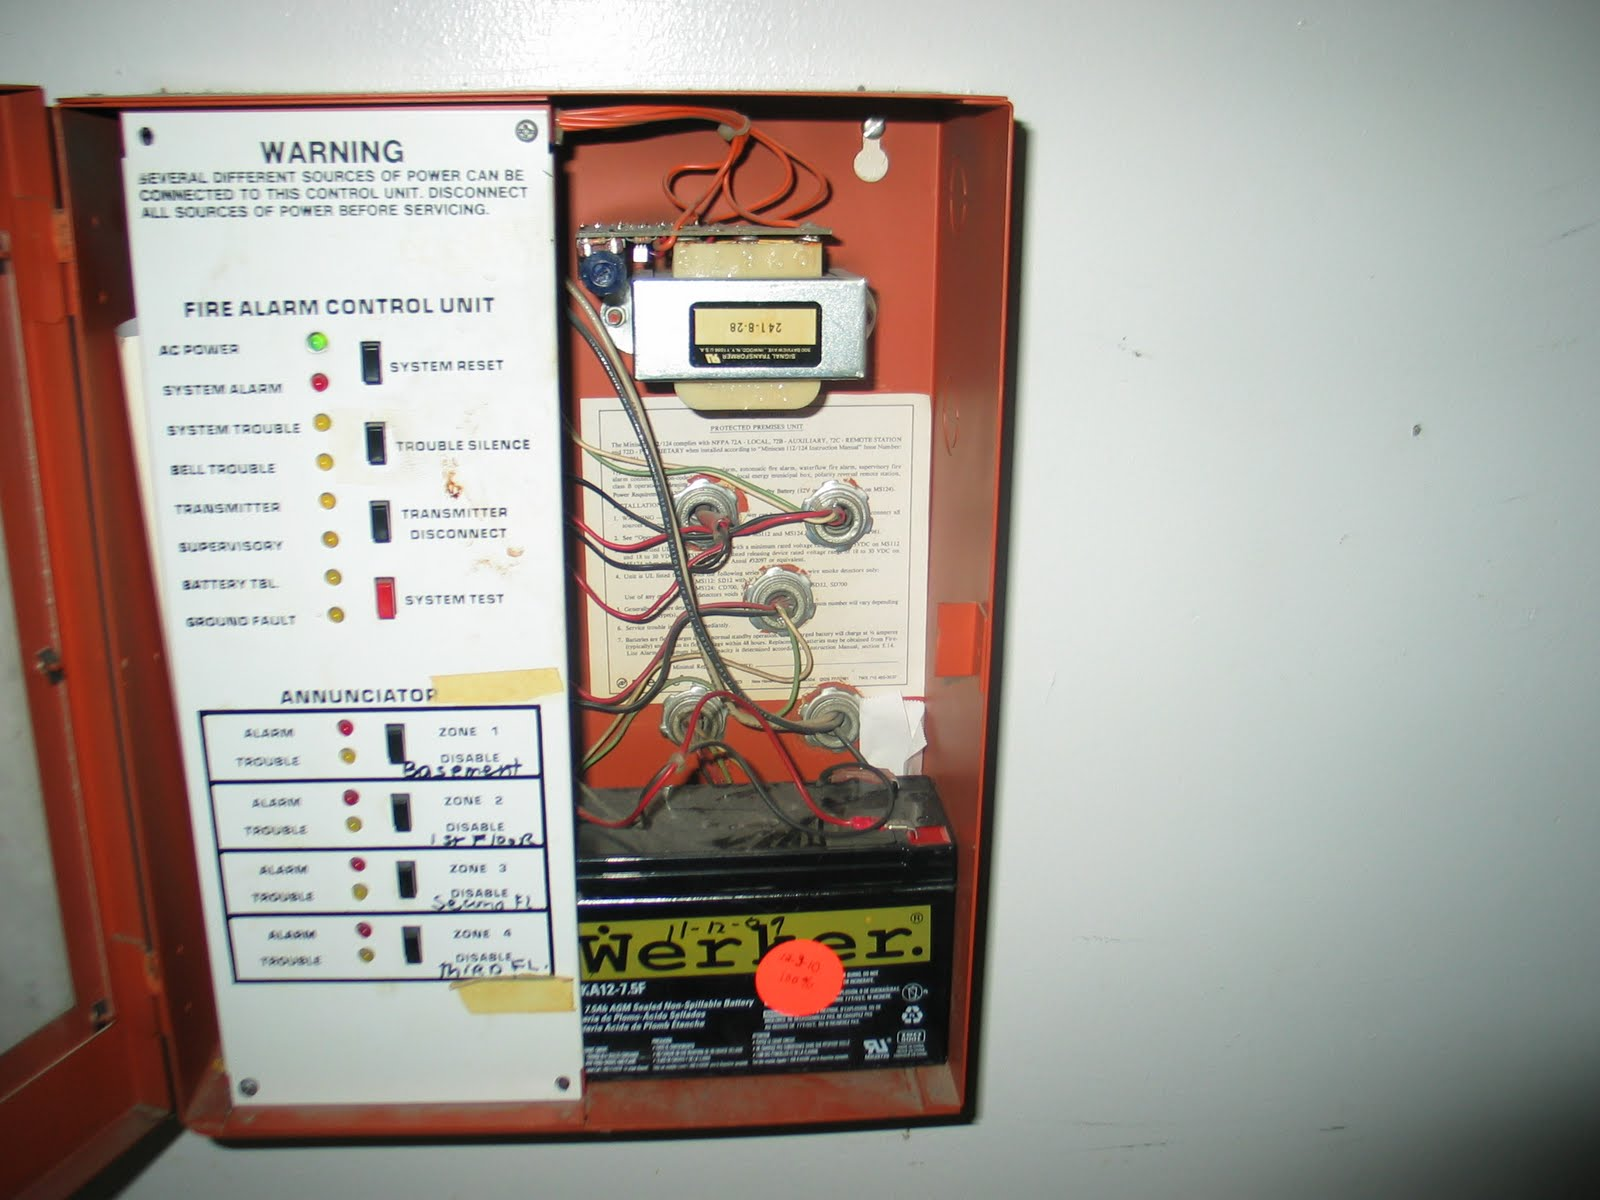 Wiring Besides Fire Alarm Bell Wiring Diagram On Fire Alarm Bell